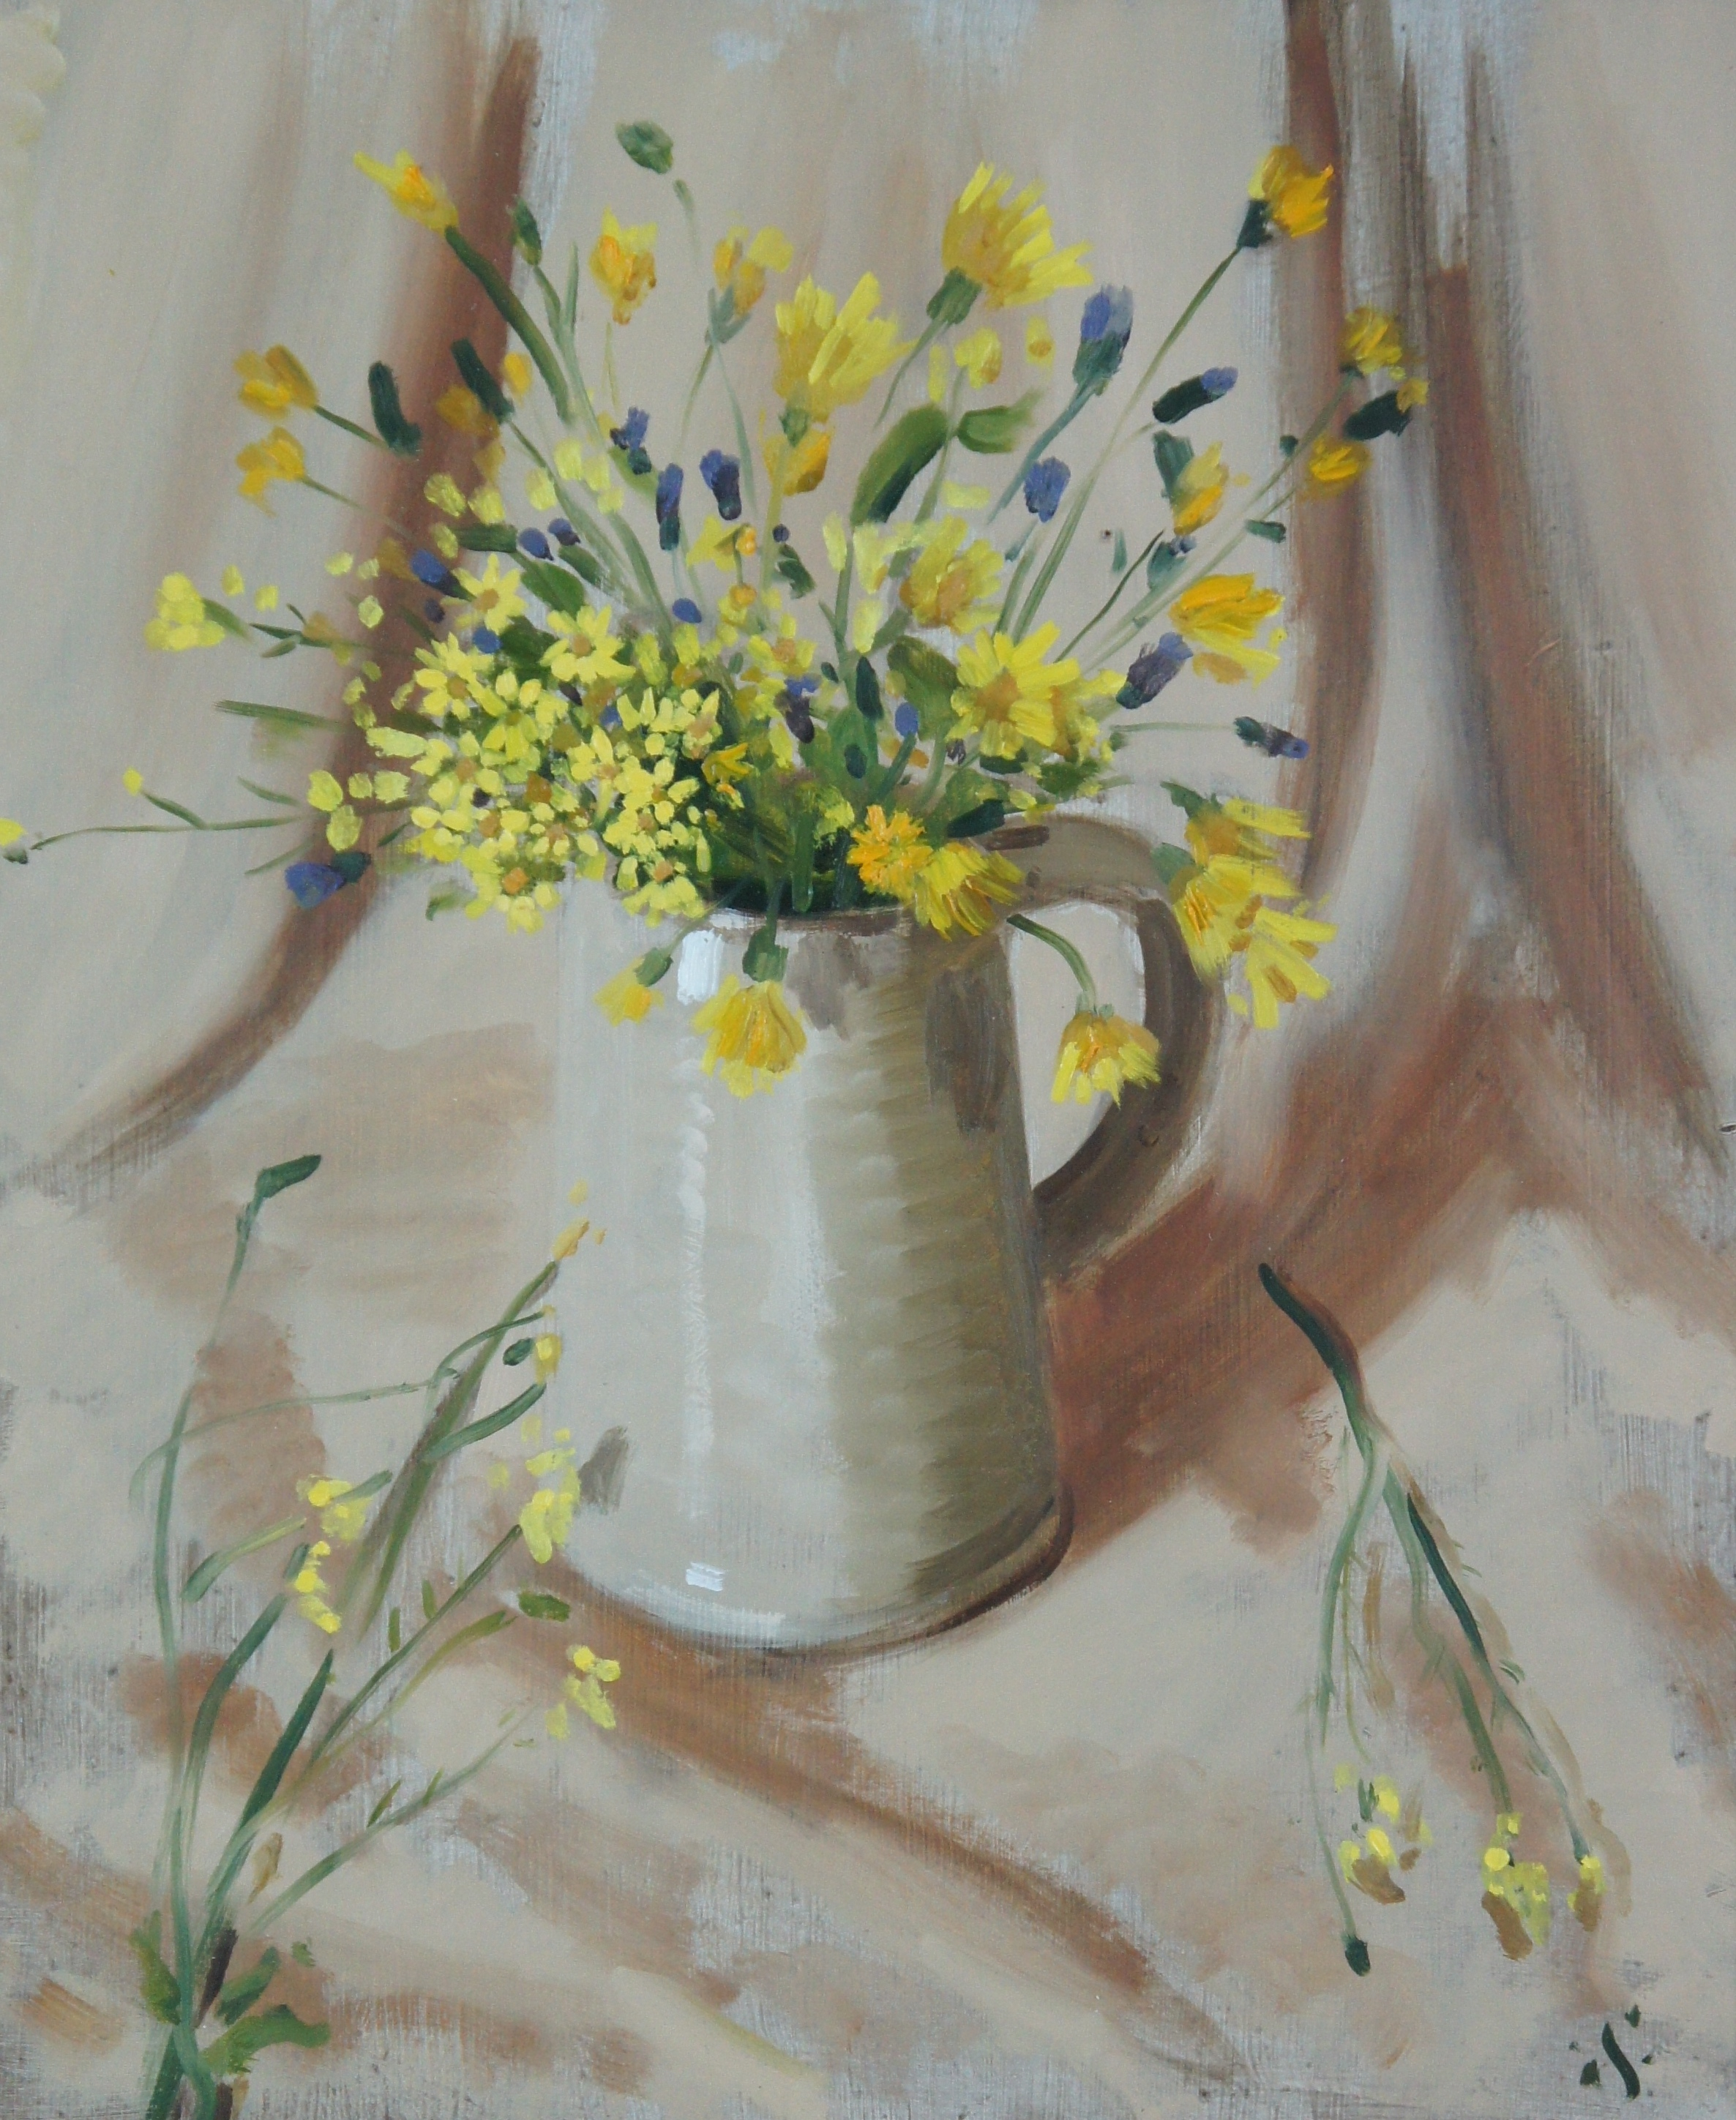 Yellow flowers in a stein